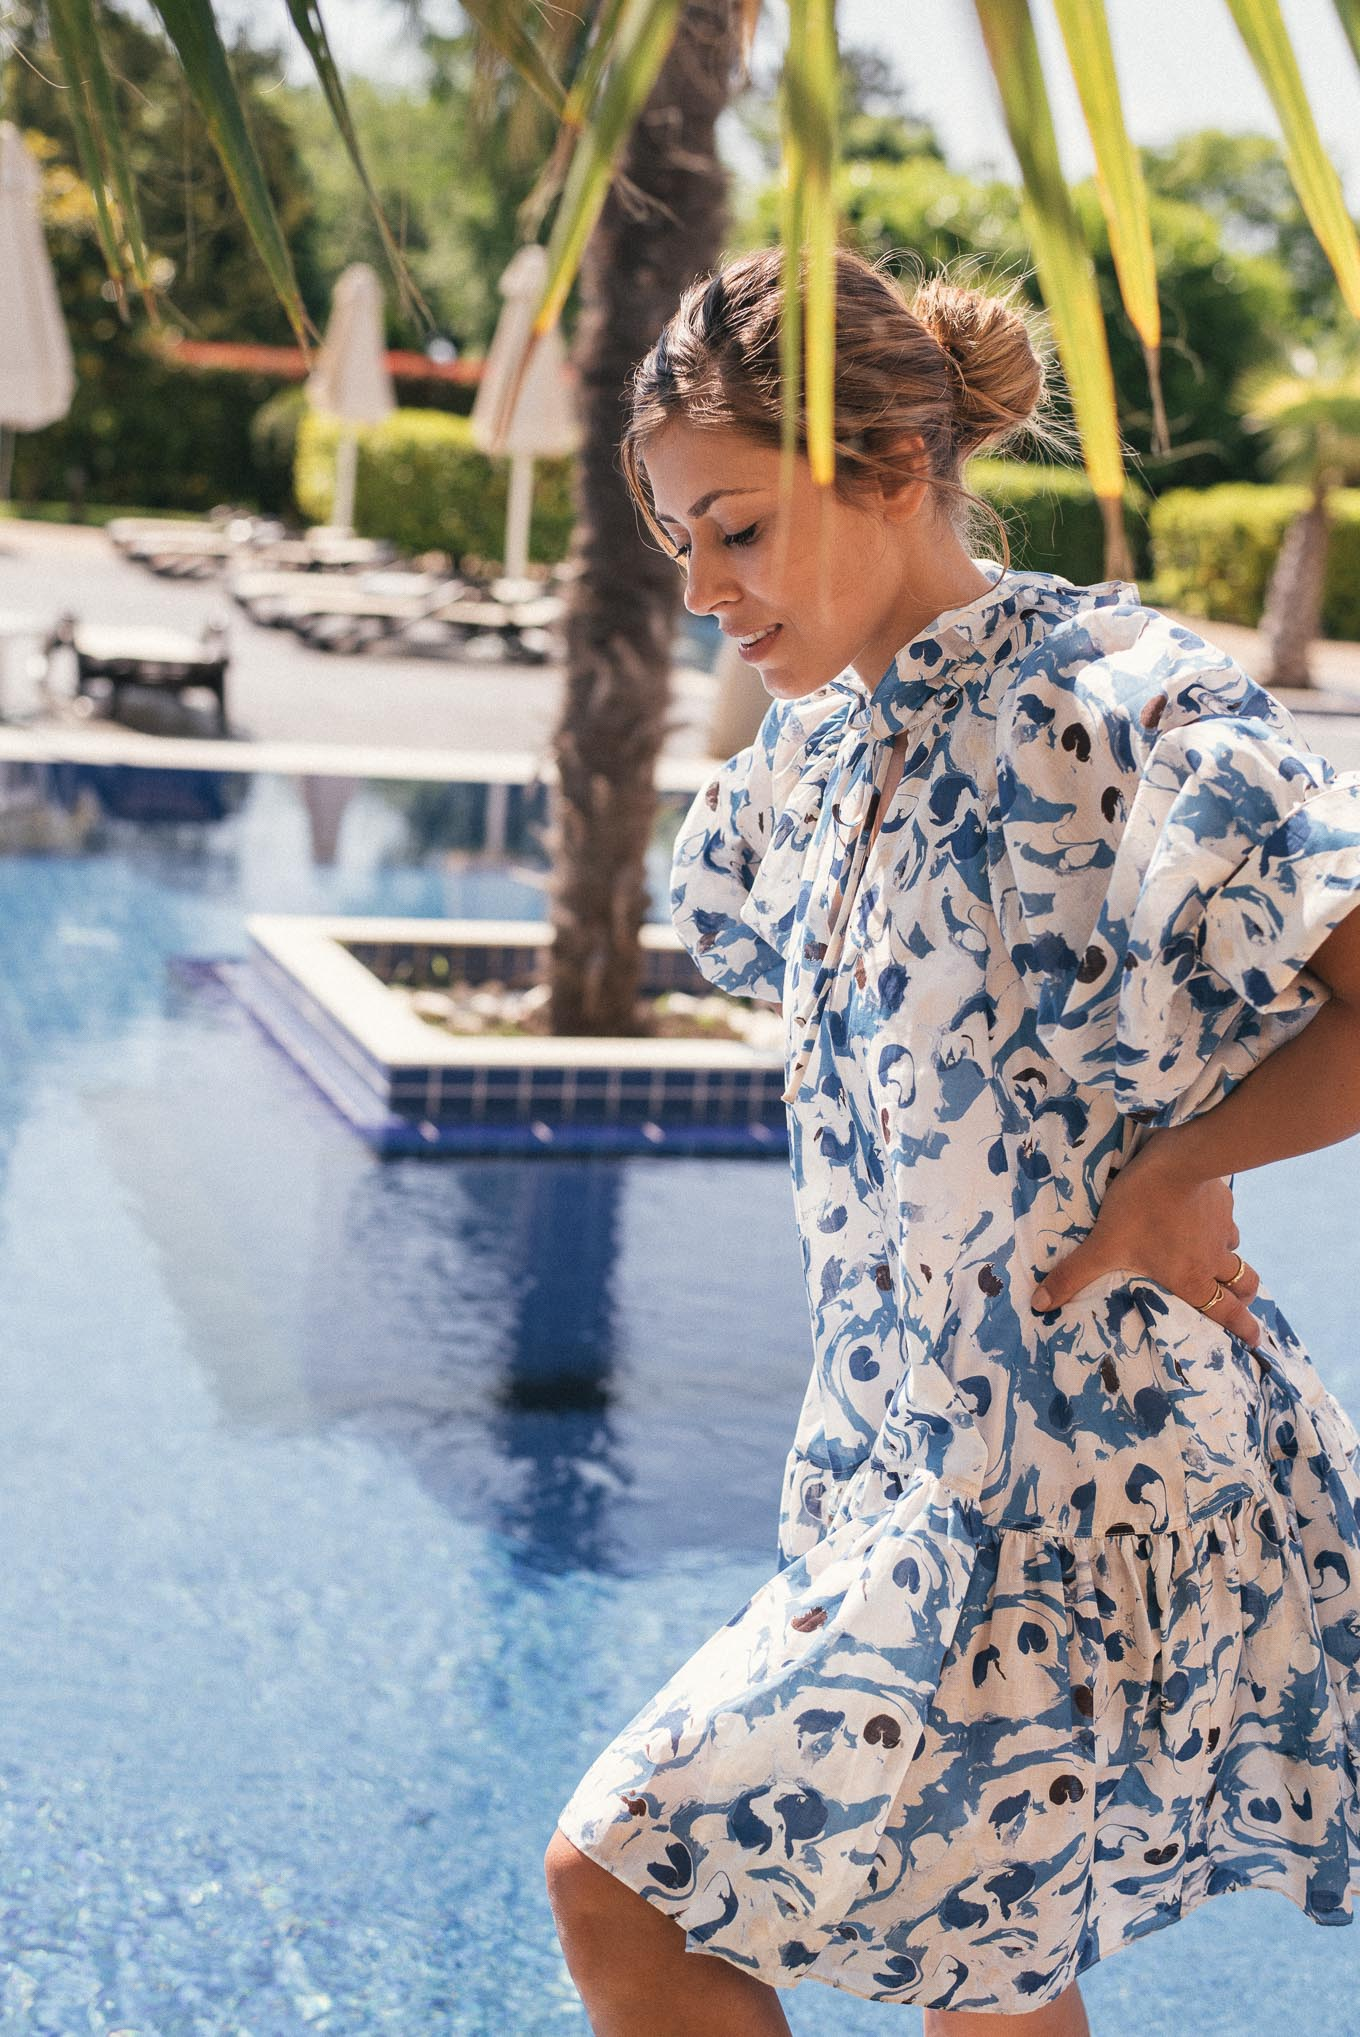 H&M summer dress by the pool